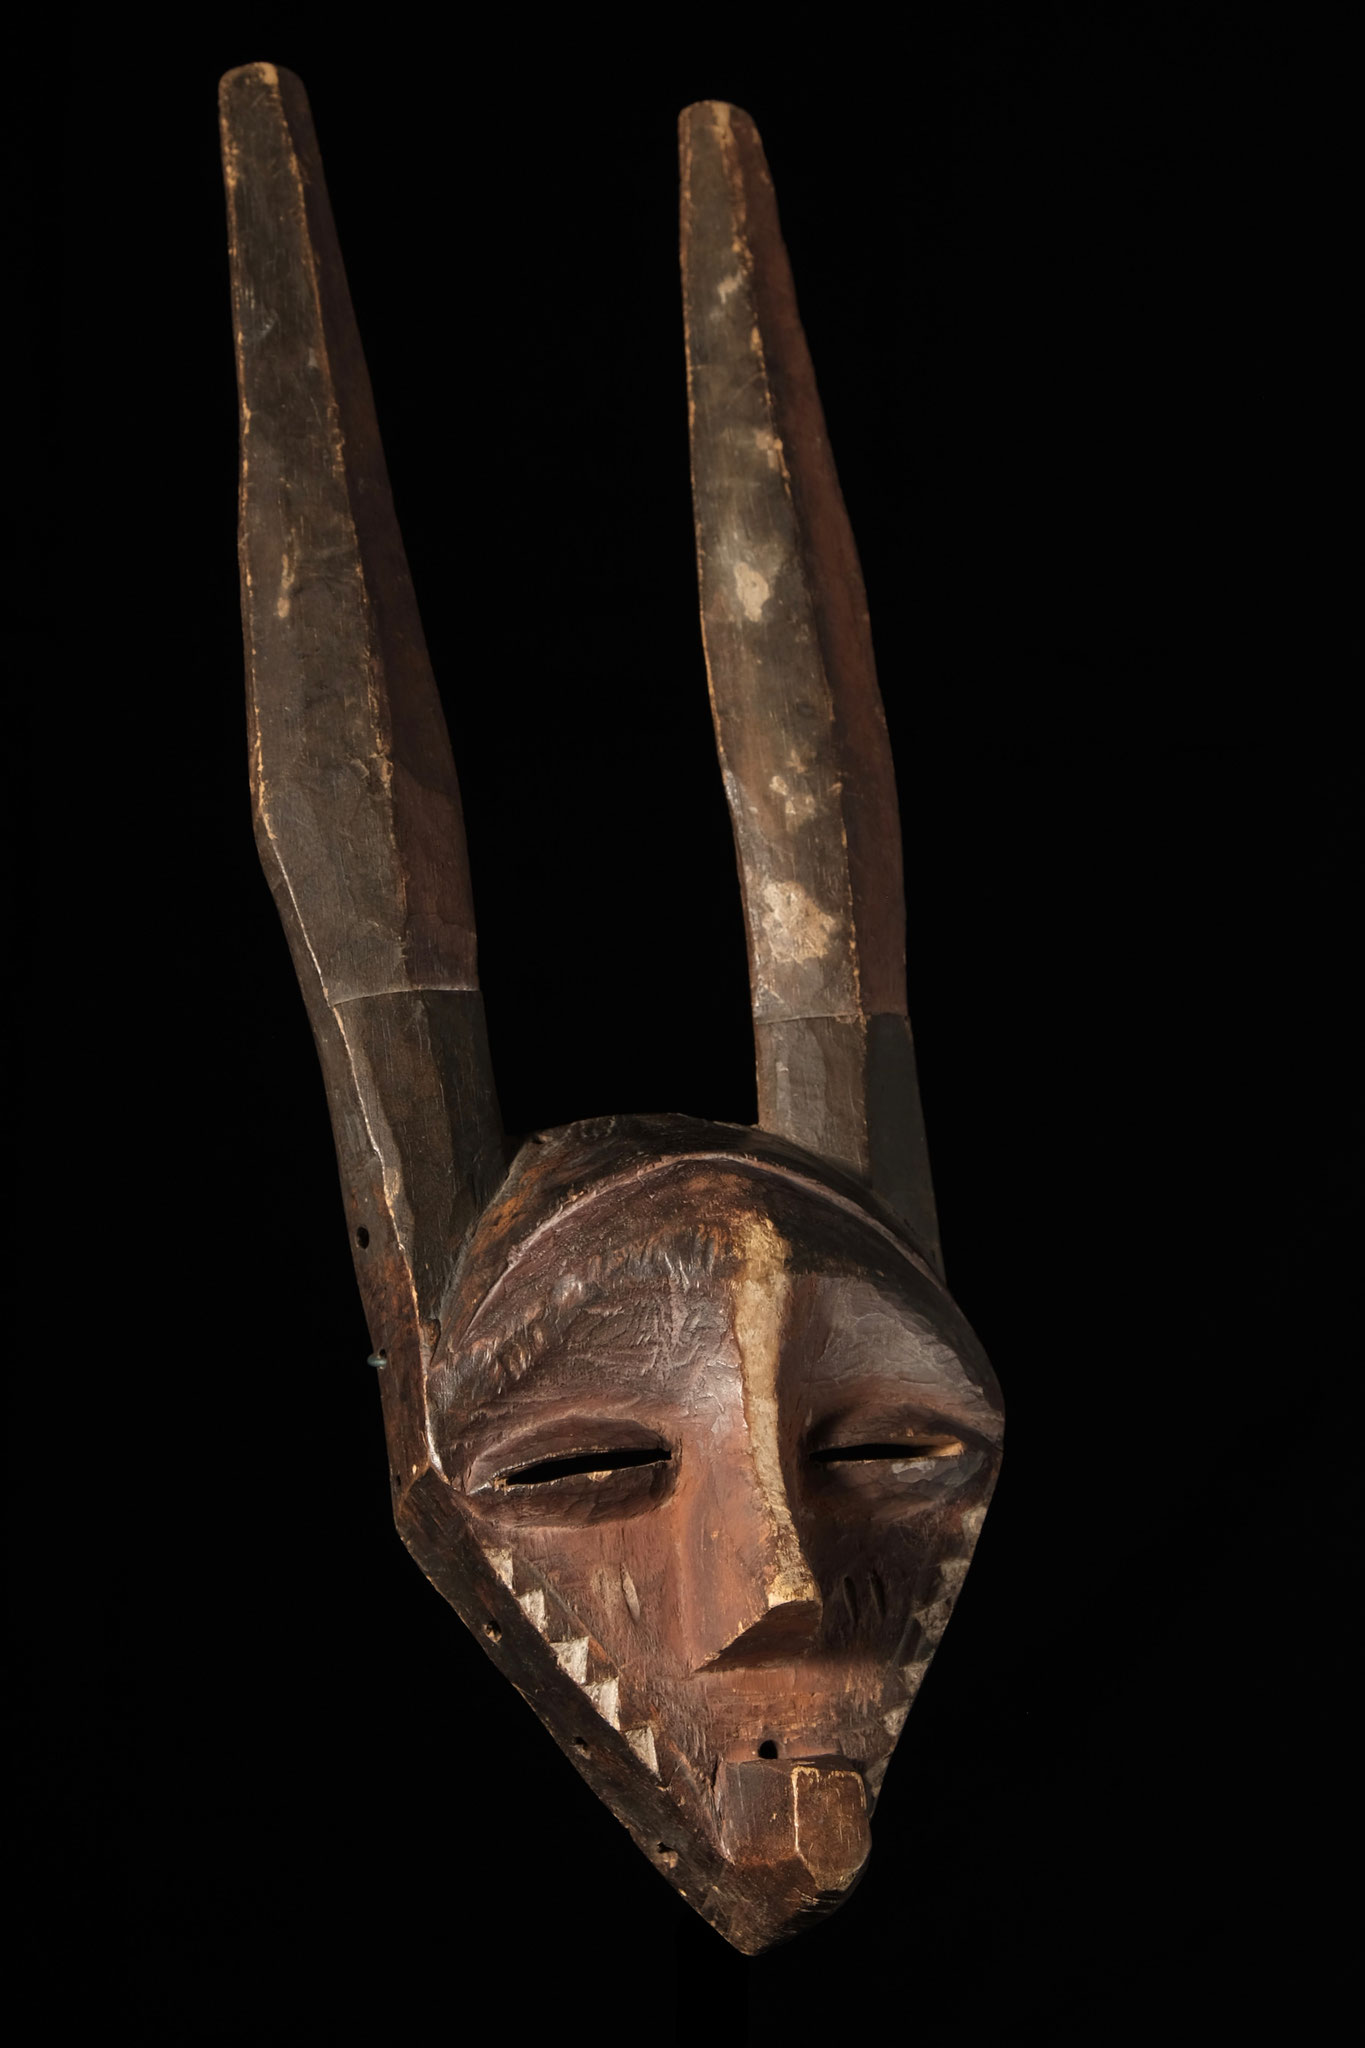 Giphogo Mask, Pende. Reddish wood with leathery patina